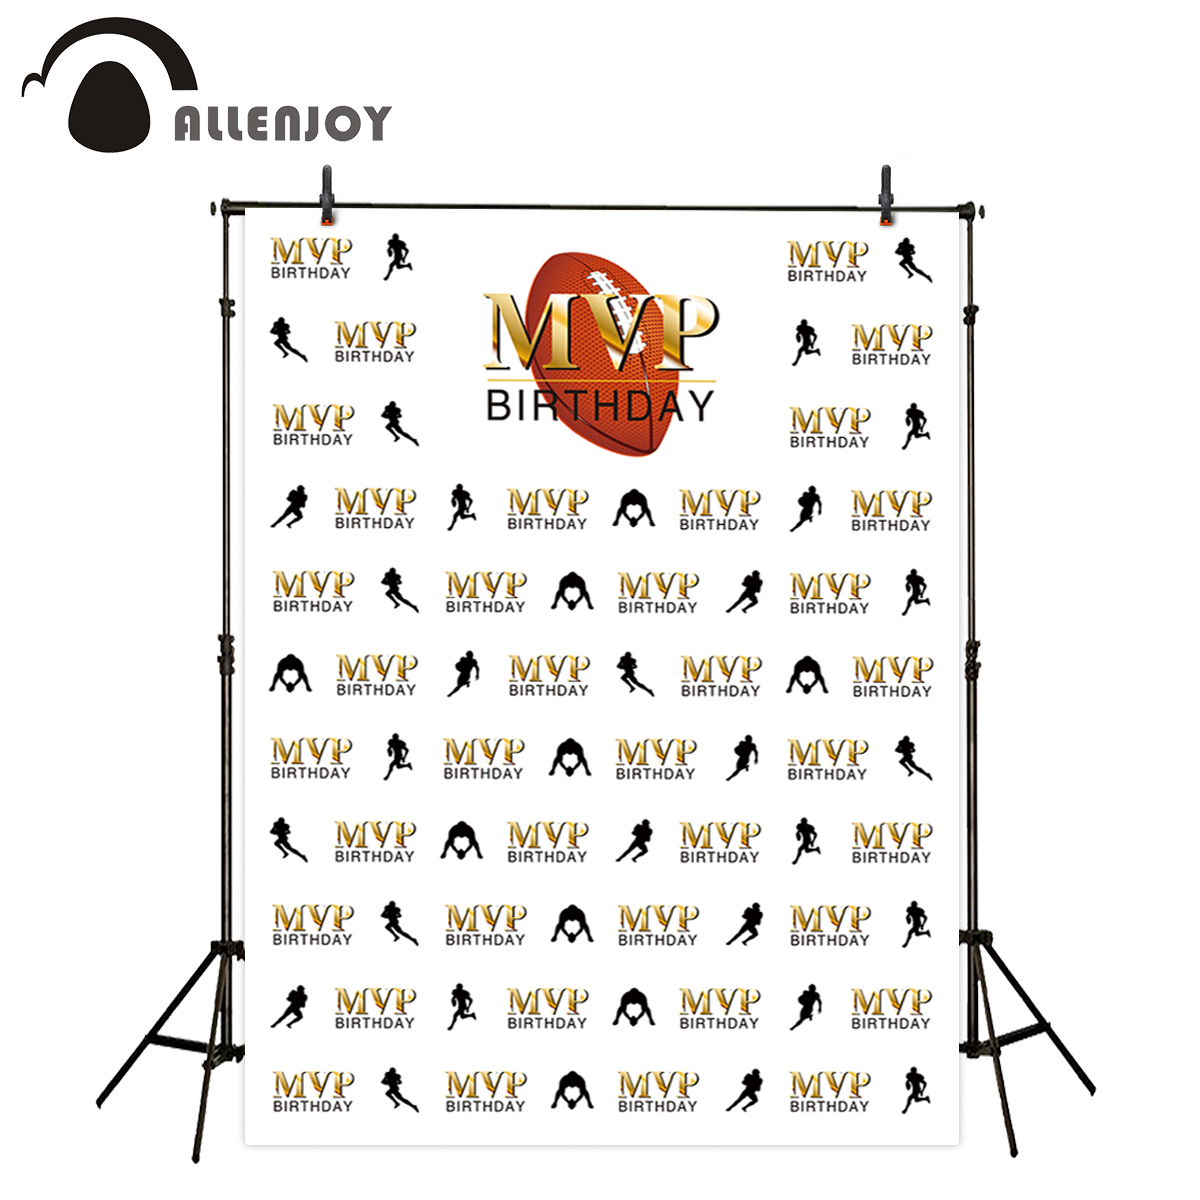 Allenjoy backgrounds for photo studio football theme birthday party step and repeat MVP backdrop photography photo shoot